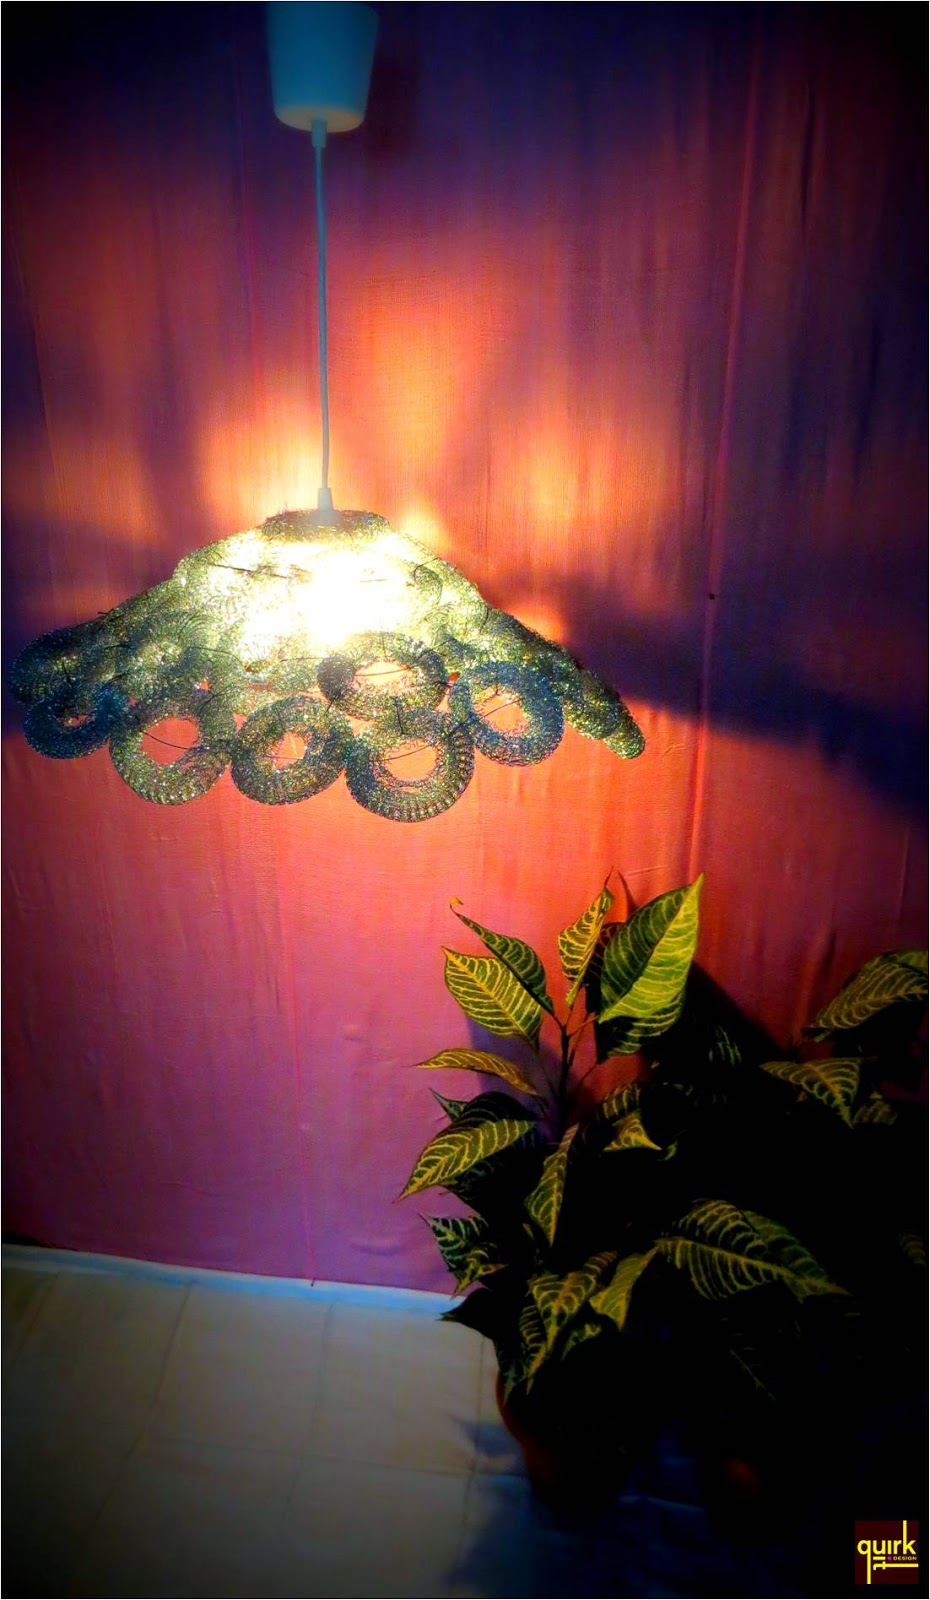 Quirk It Design_Steel Roses_lamp made of steel wool-DIY_upcycle_repurpose_Quirky_Home_Decor